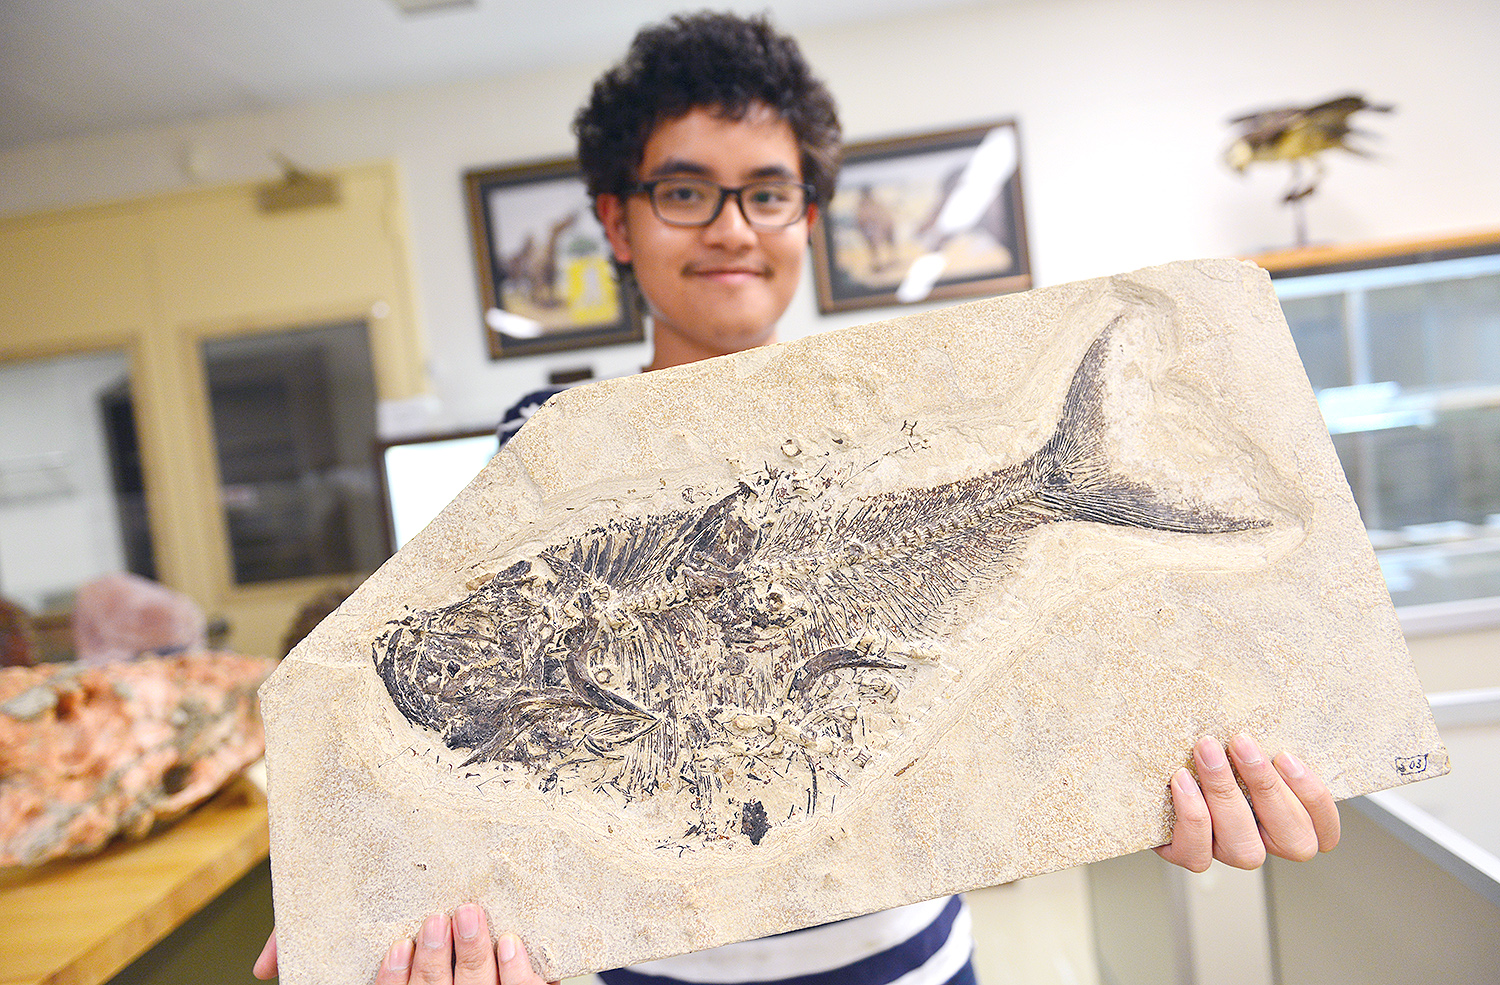 Sanjirat Palakarn '20 displays a fossil of Diplomystus dentatus from the Eocene Period. The fossil was discovered in what is now Wyoming. Diplomystus is an extinct freshwater fish distantly related to herrings and sardines.